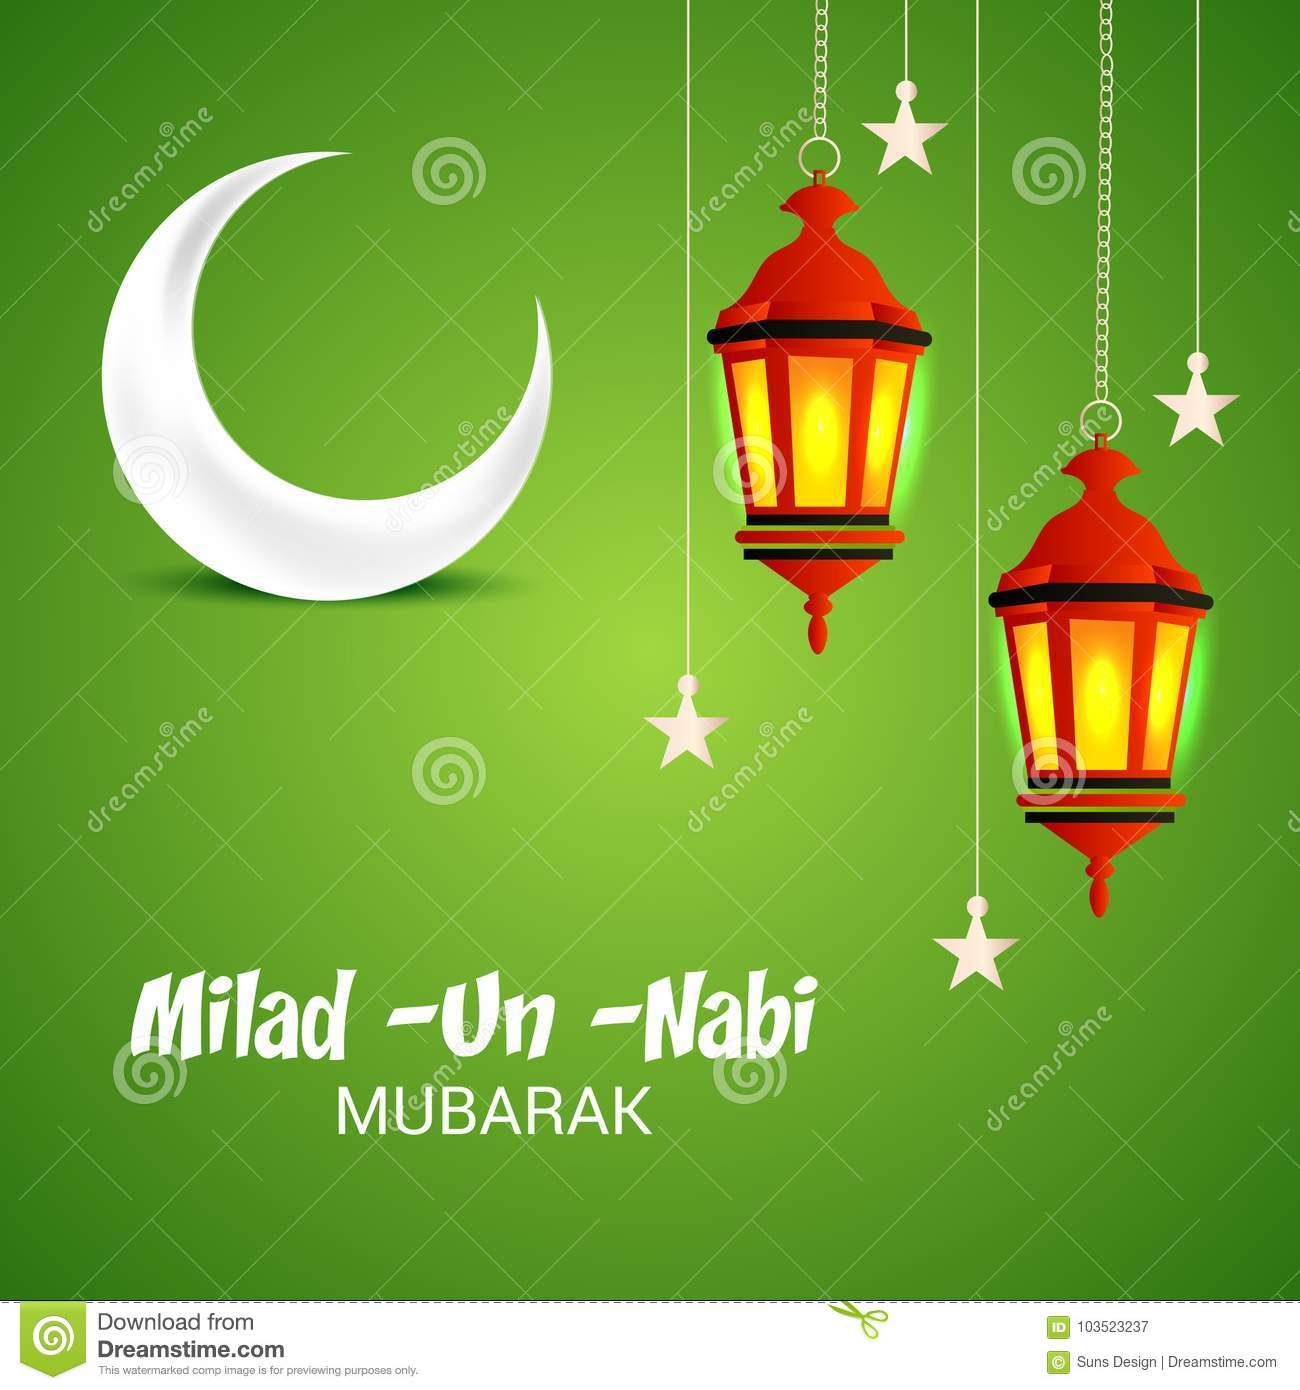 milad un nabi stock illustration illustration of muslim 103523237 https www dreamstime com milad un nabi vector illustration background beautiful text mosque image103523237